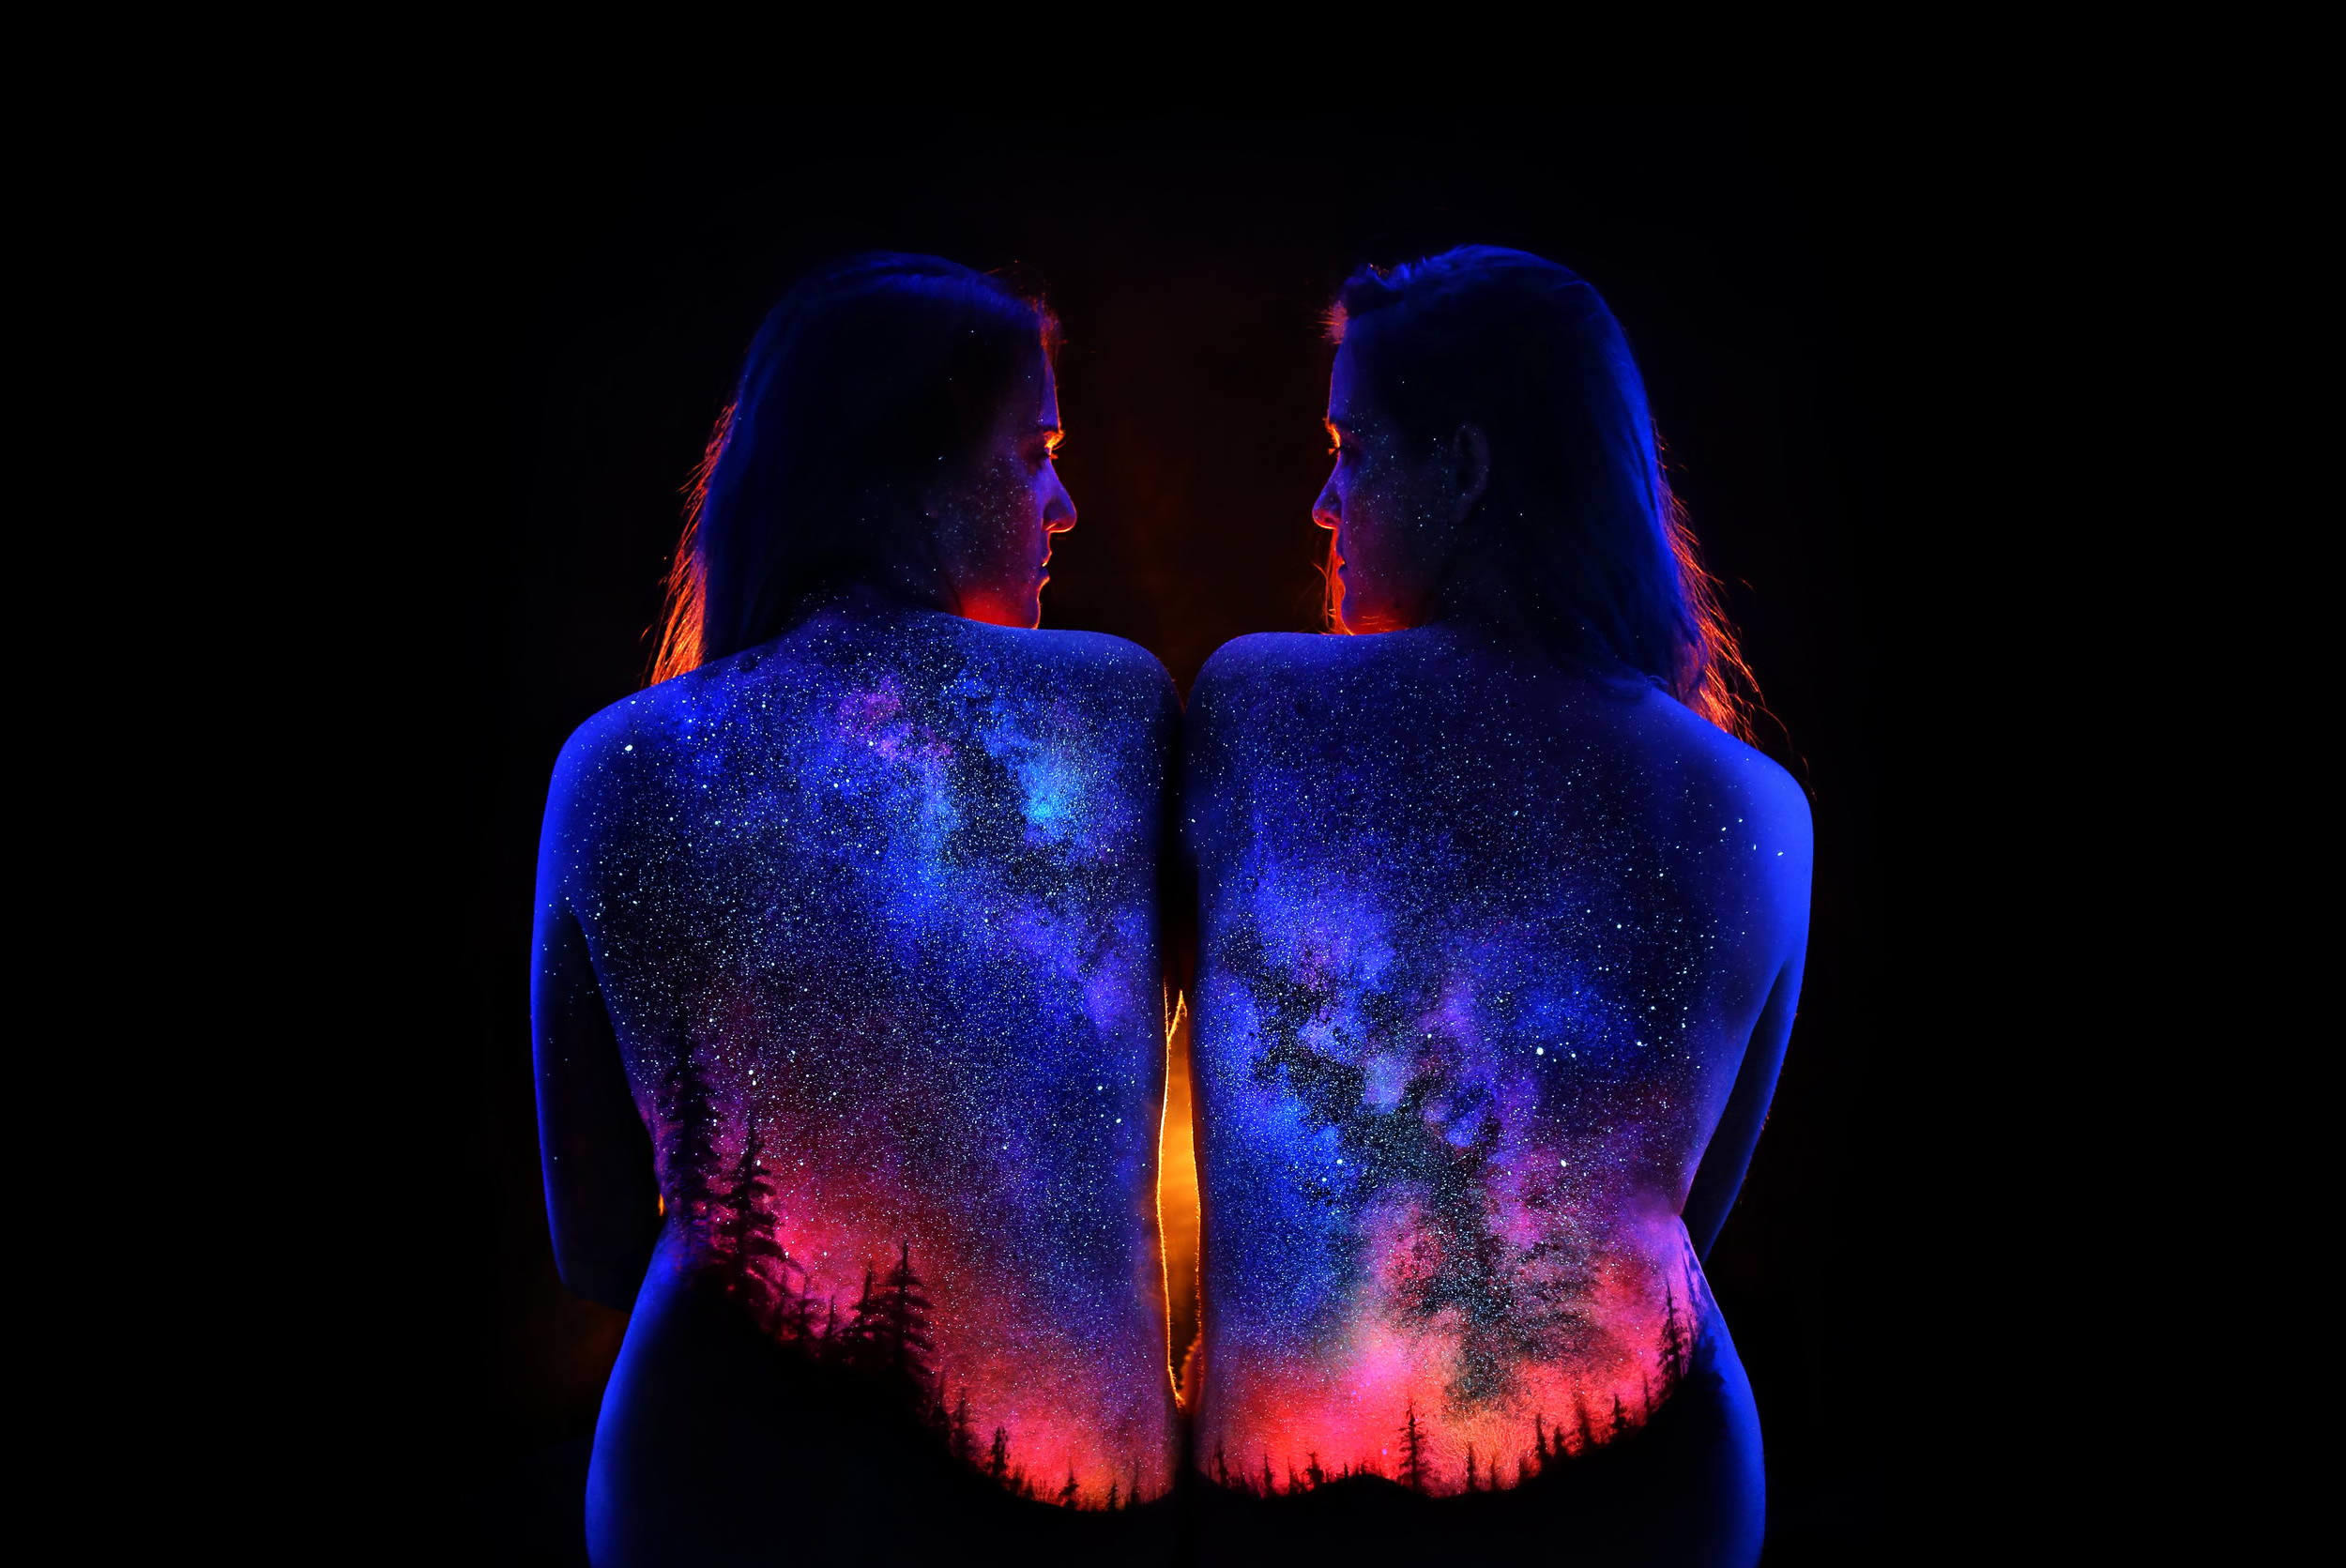 Electrifying Body Paintings Viewed Under Black Light